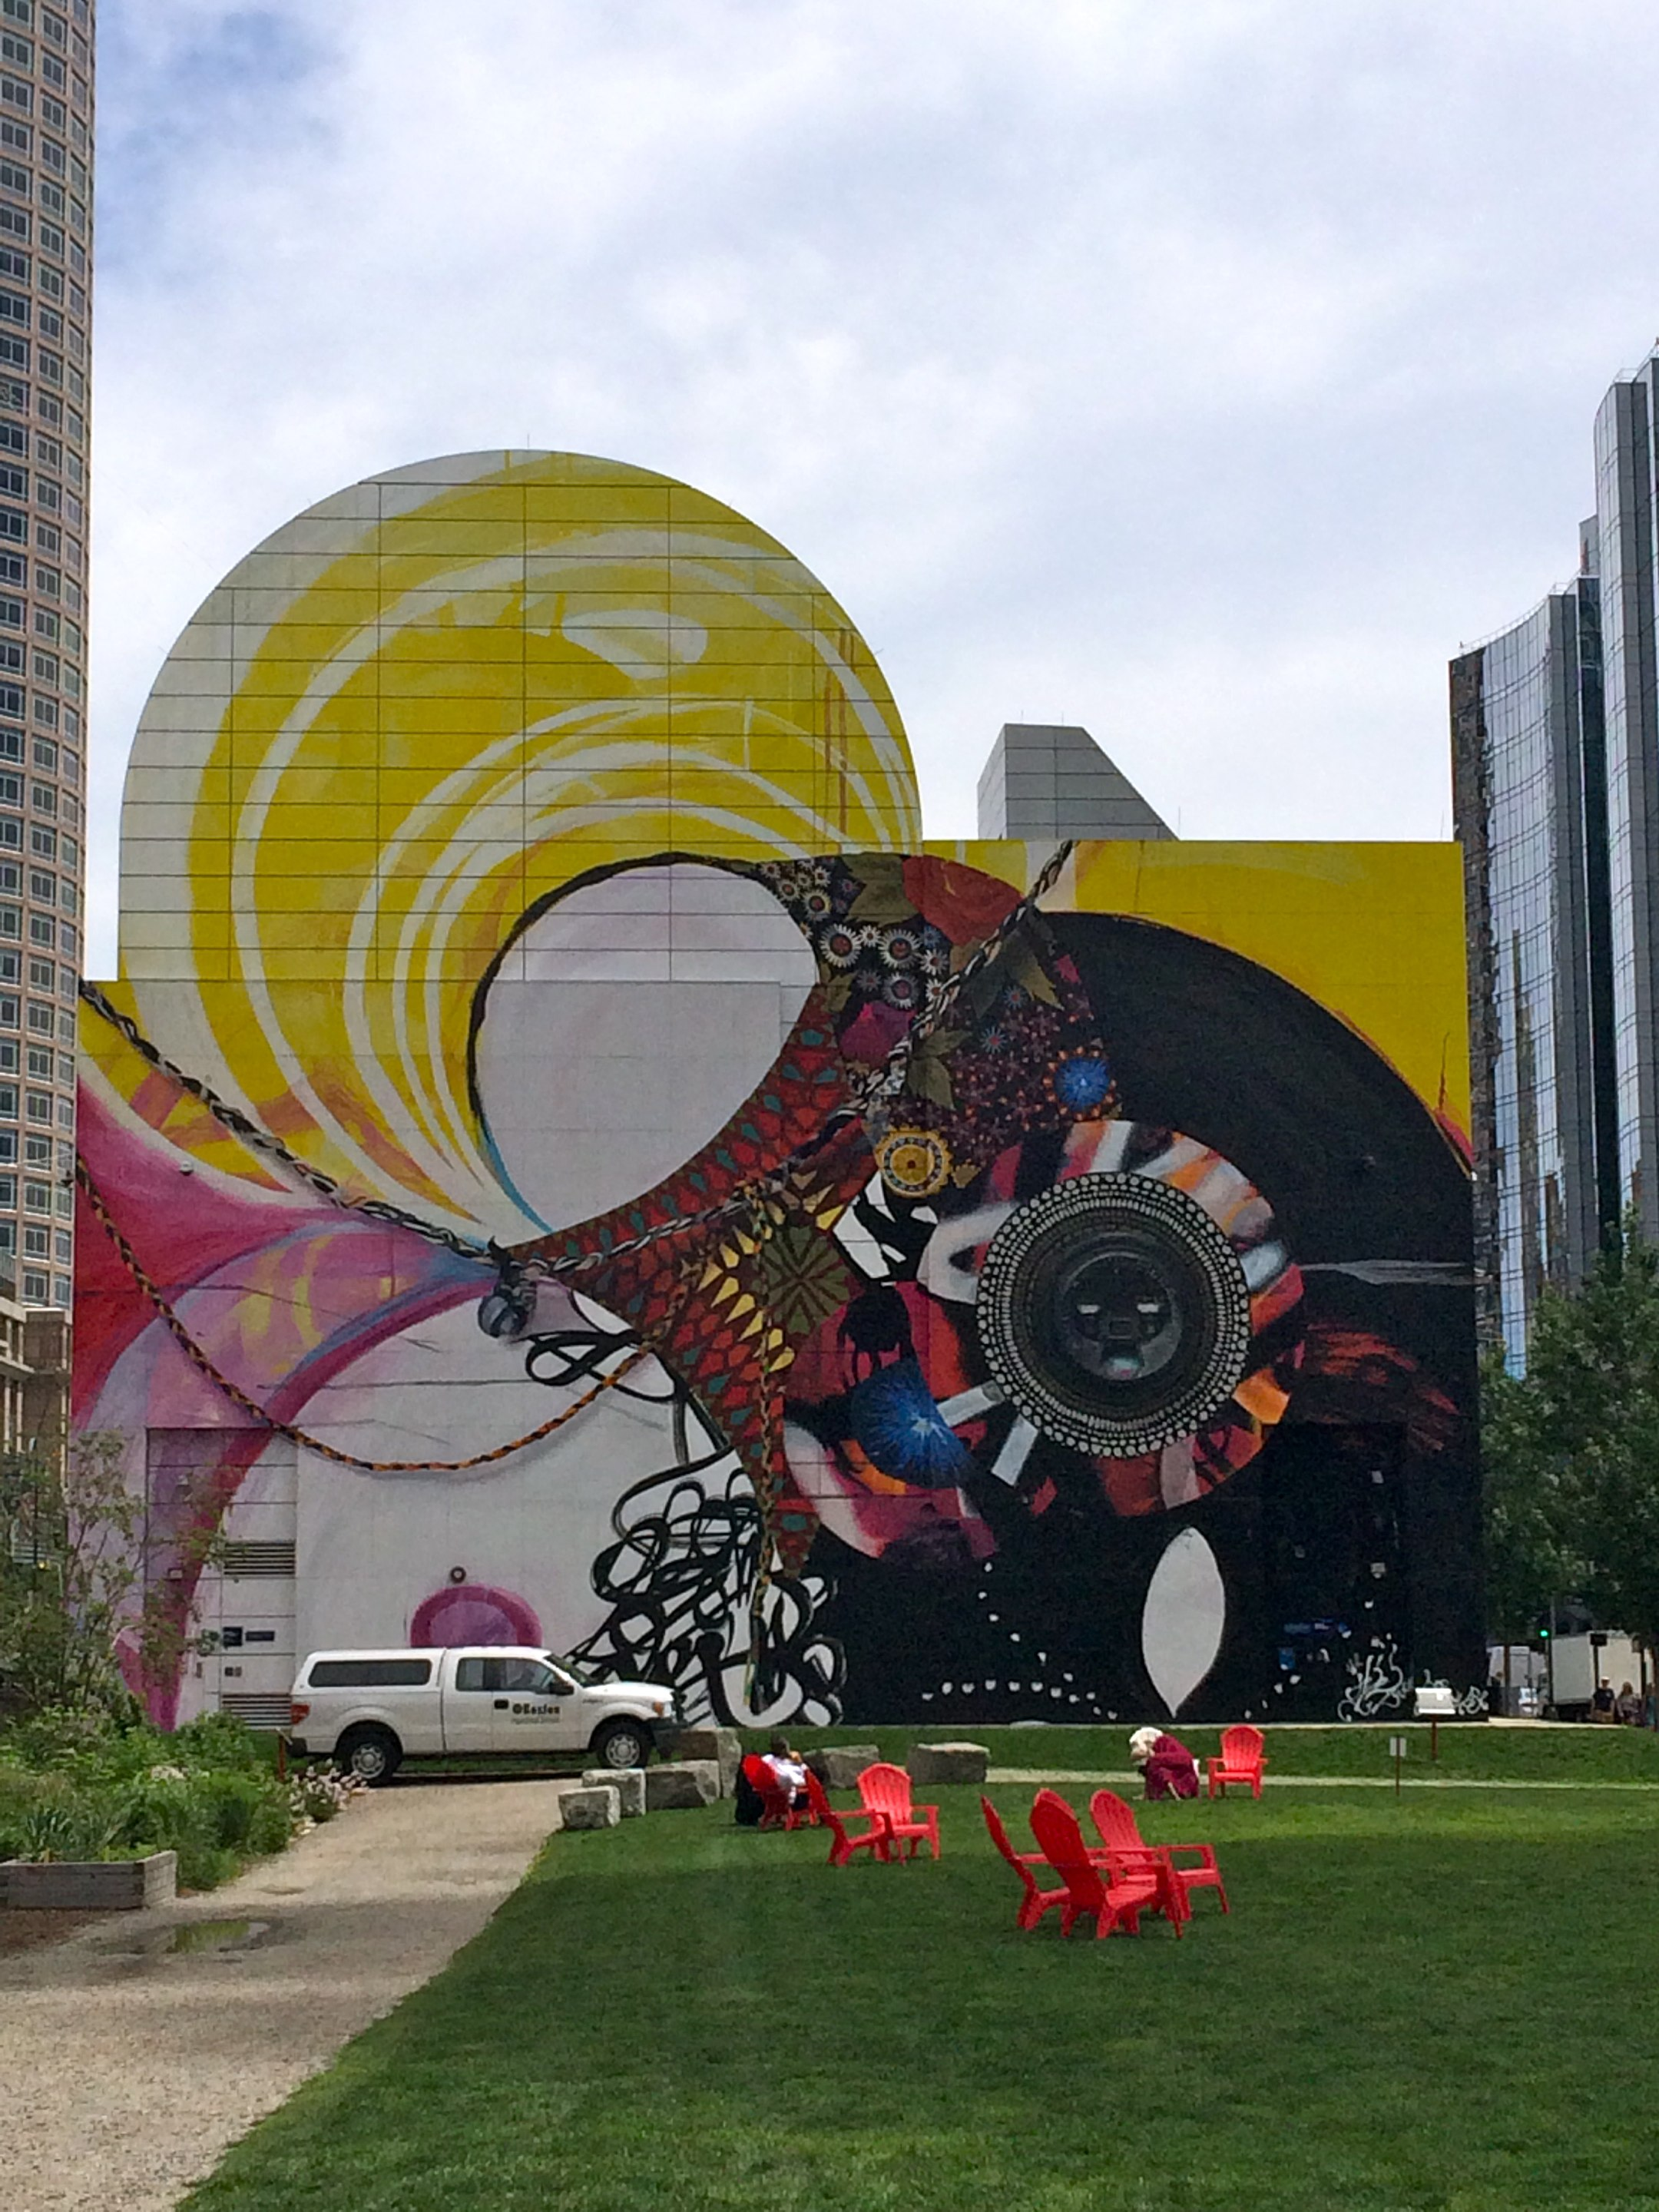 Mural at dewey square park flickr photo sharing for Dewey square mural